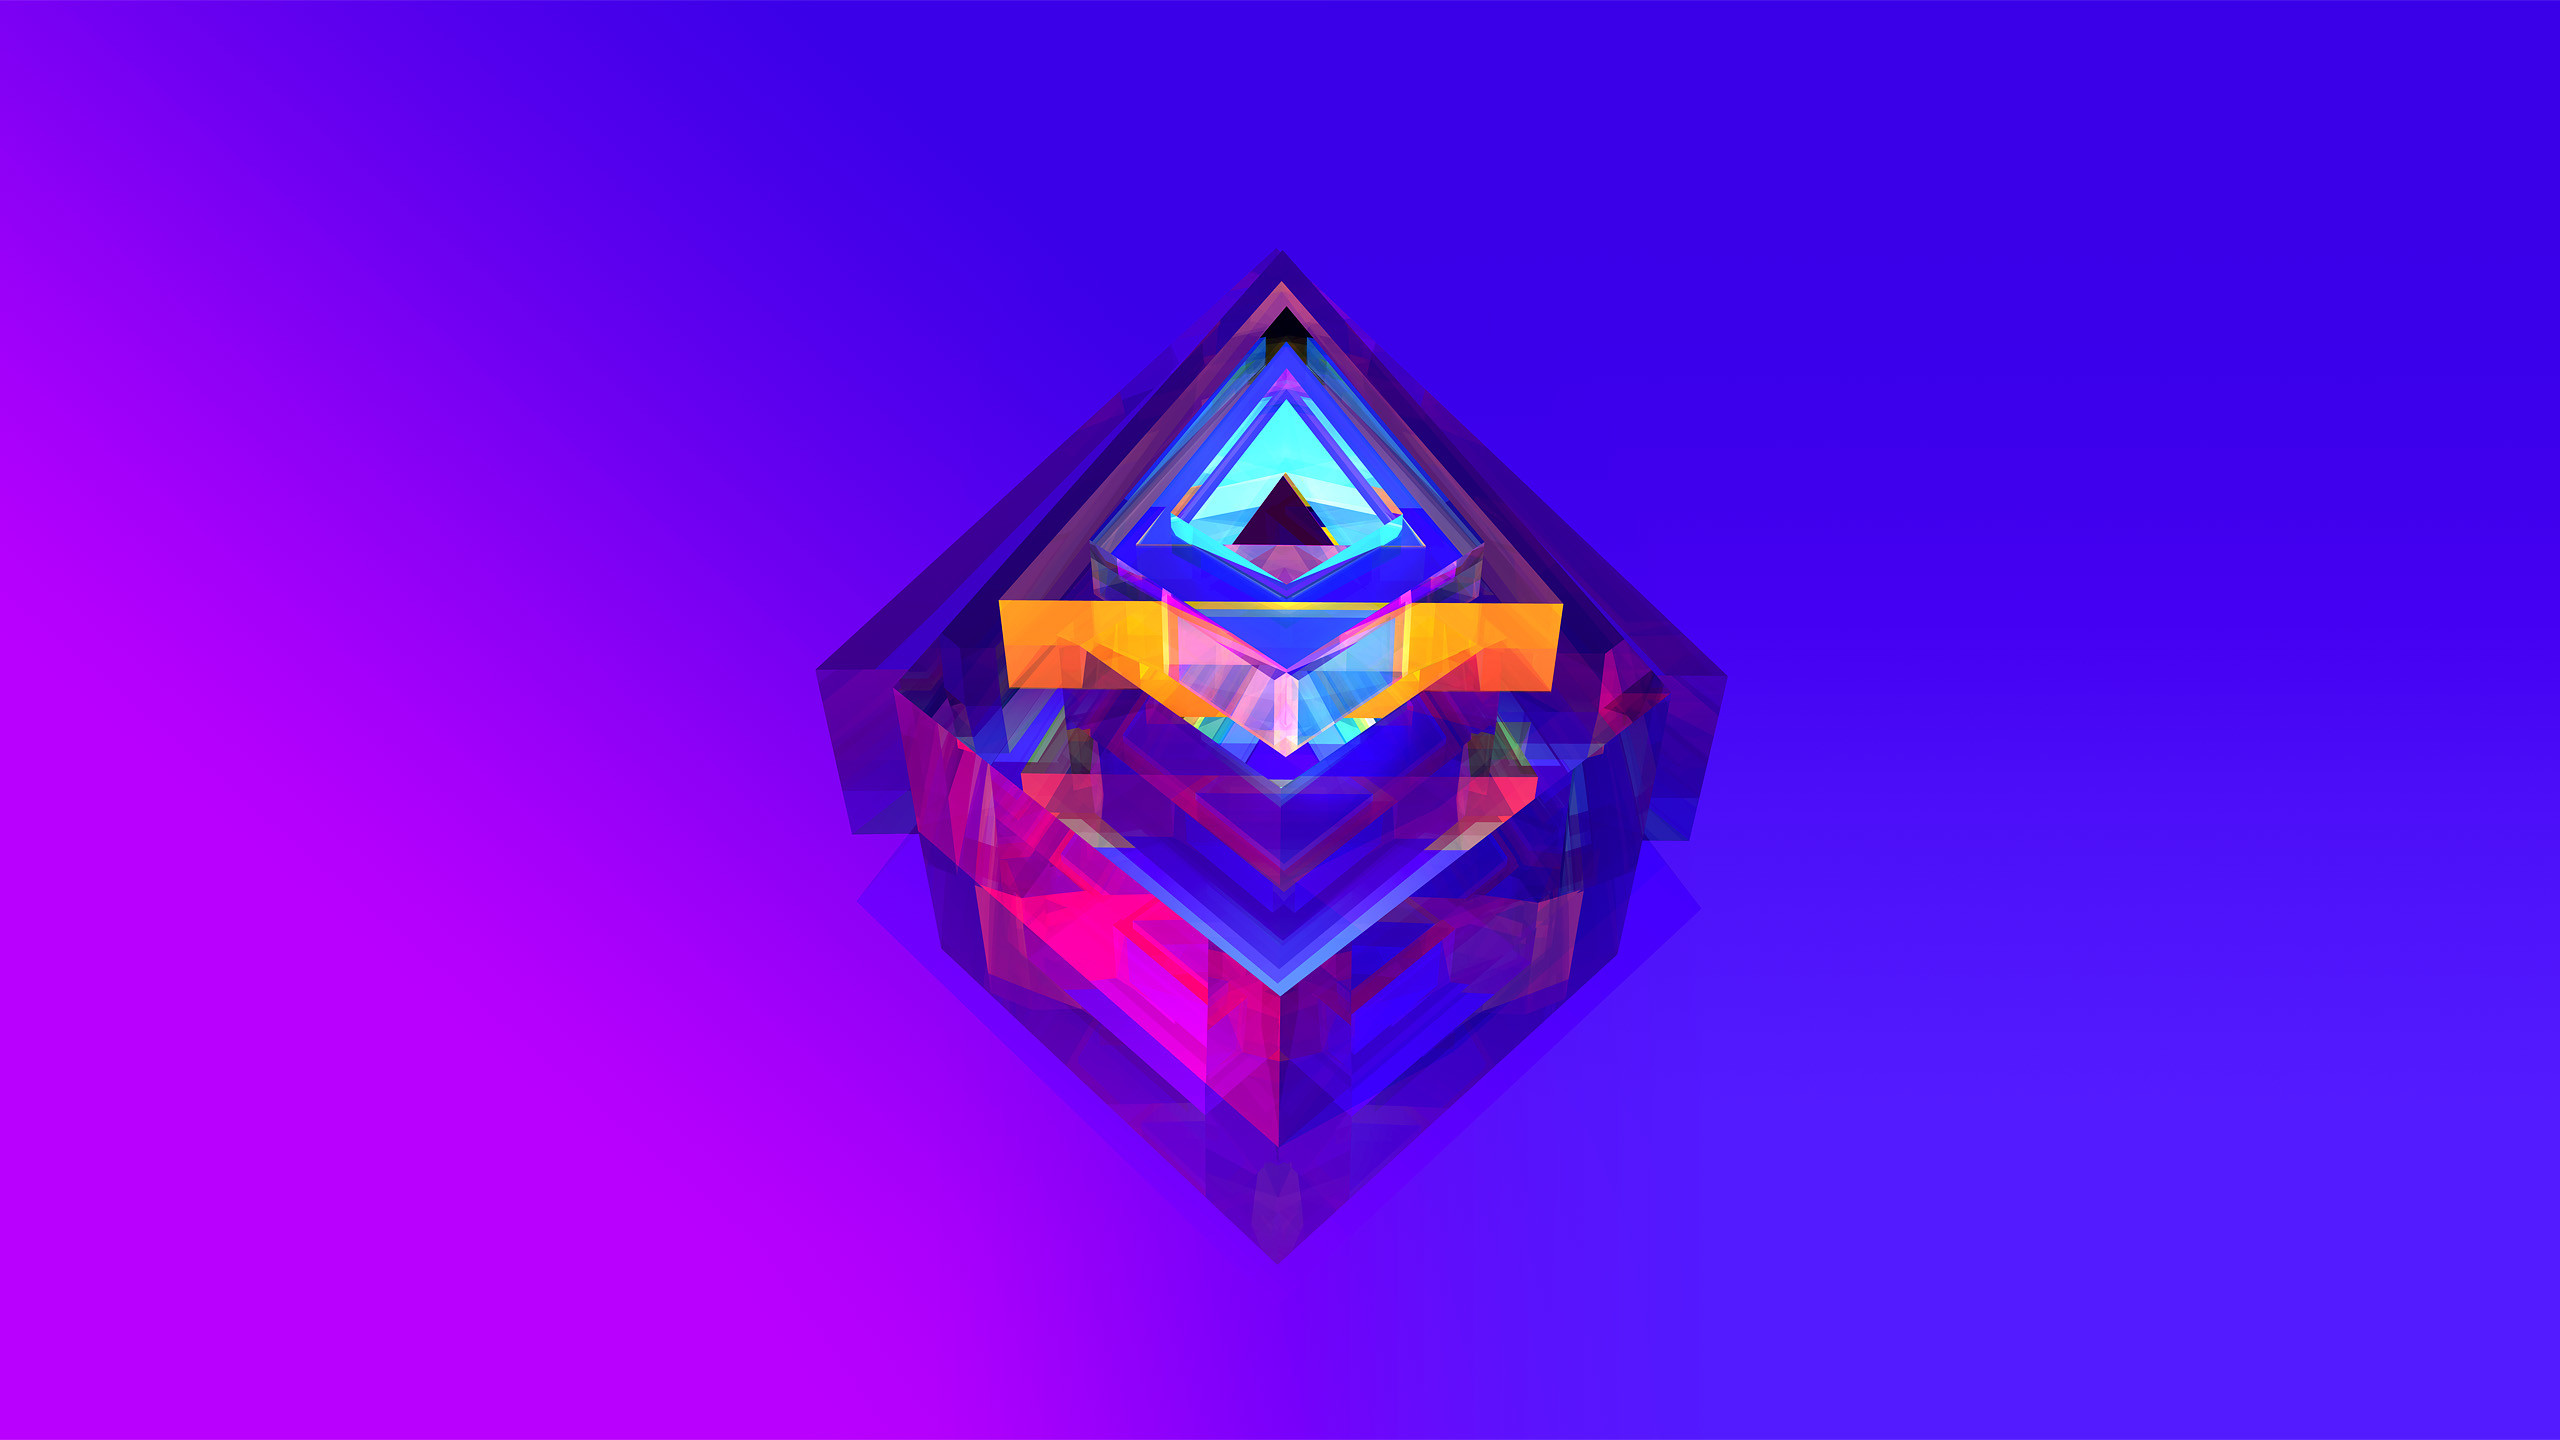 Facets by Justin Maller – Album on Imgur